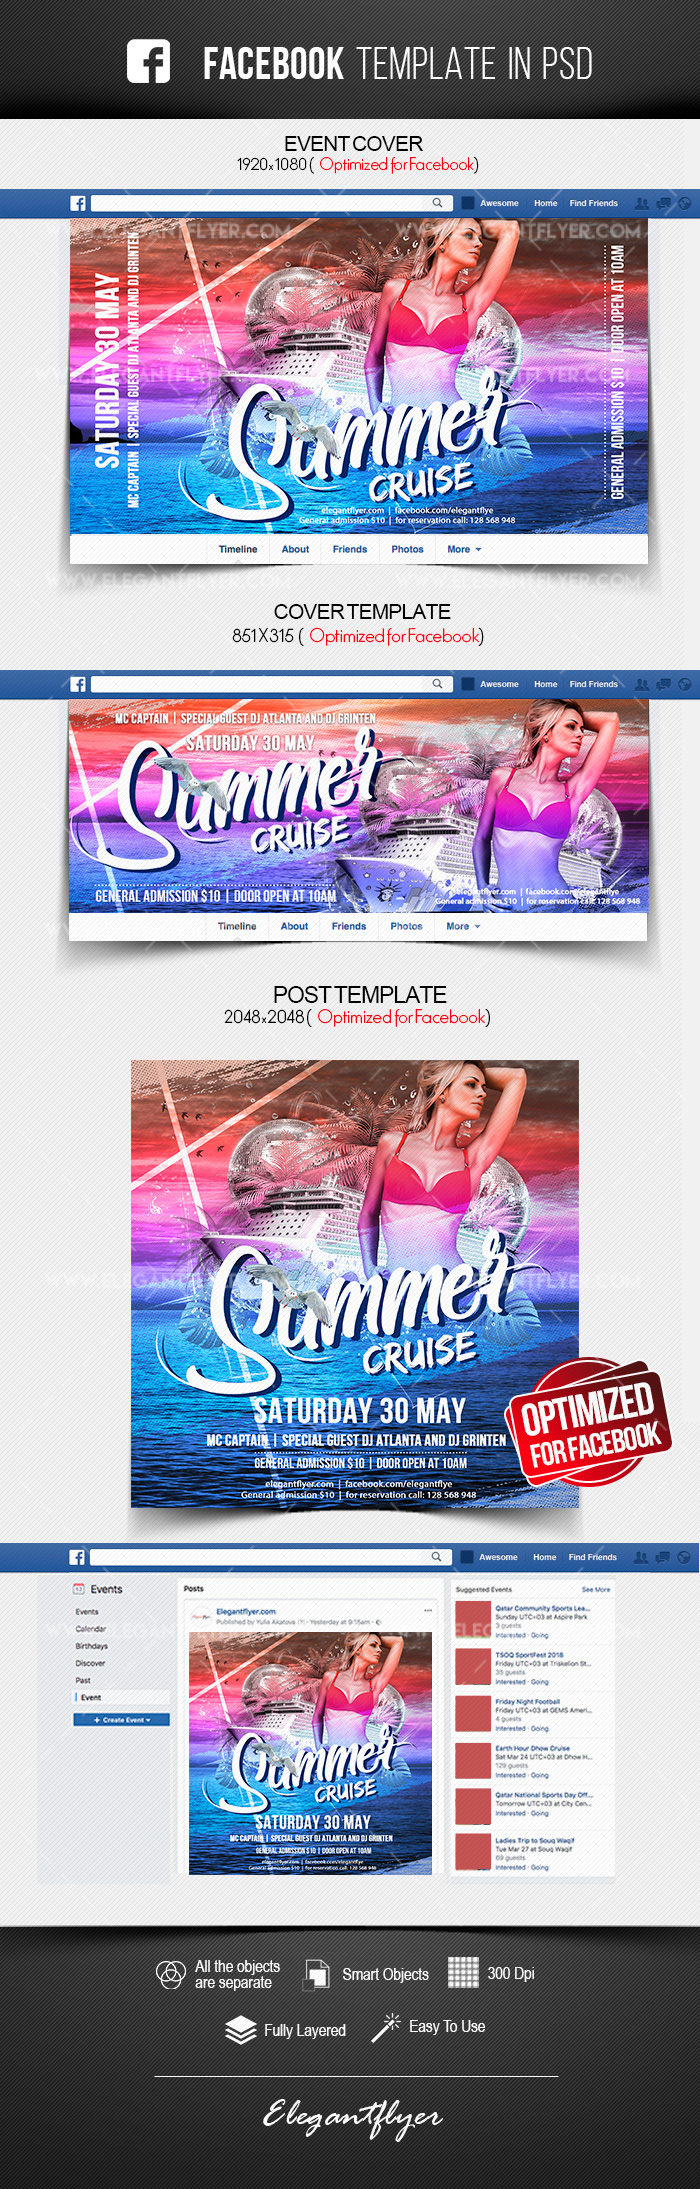 Summer Cruise – Facebook Cover Template in PSD + Post + Event cover